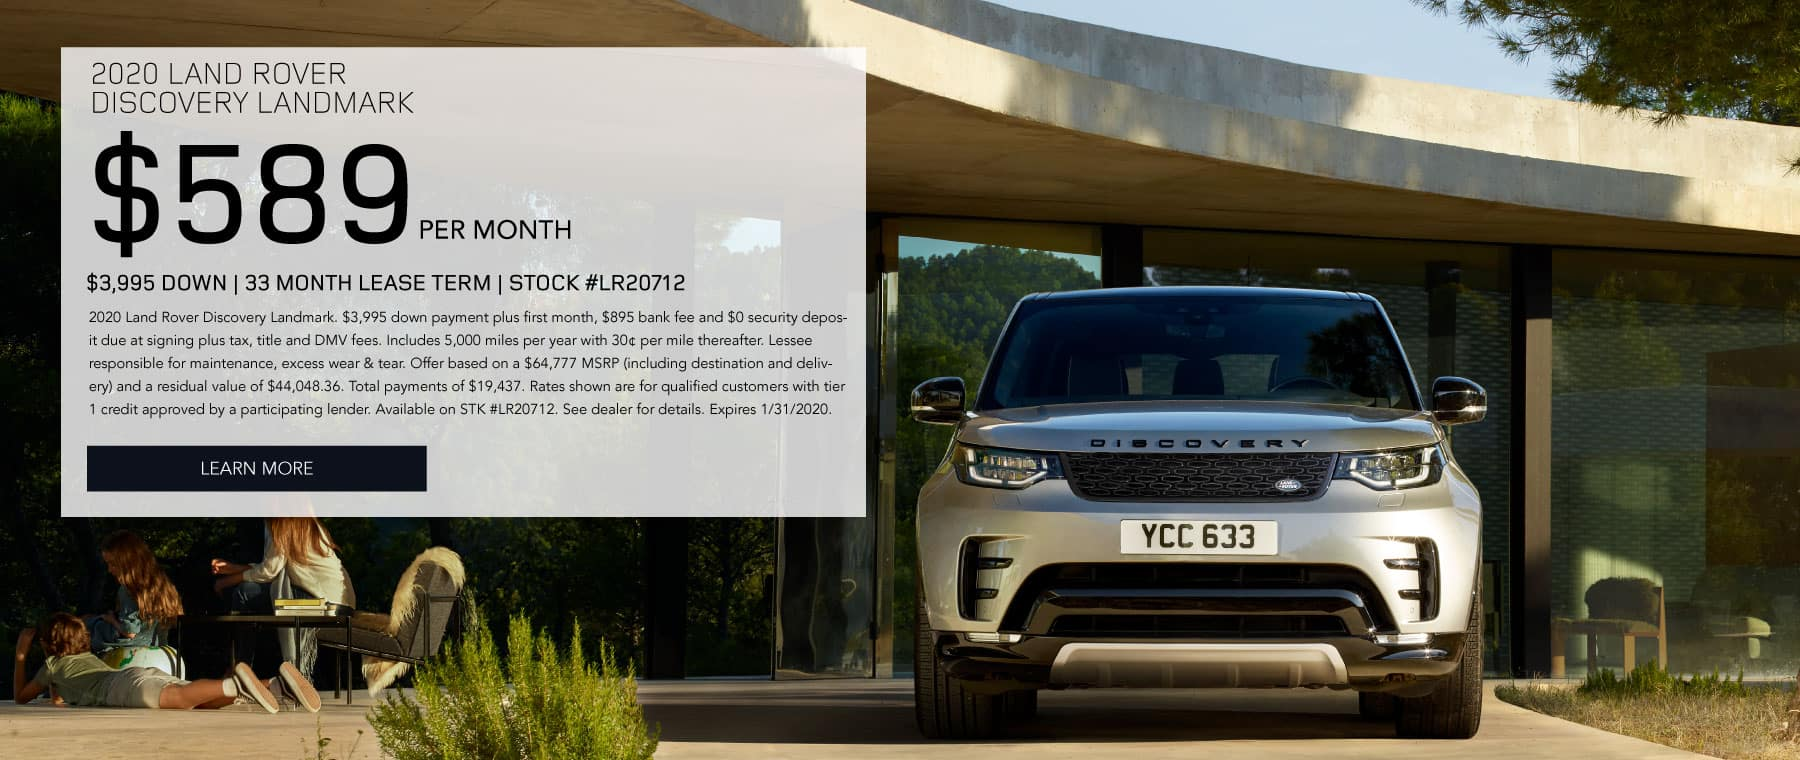 2020 LAND ROVER DISCOVERY LANDMARK $589 PER MONTH $3,995 DOWN 33 MONTH LEASE TERM STOCK #LR20712 2020 Land Rover Discovery Landmark. $3,995 down payment plus first month, $895 bank fee and $0 security deposit due at signing plus tax, title and DMV fees. Includes 5,000 miles per year with 30¢ per mile thereafter. Lessee responsible for maintenance, excess wear & tear. Offer based on a $64,777 MSRP (including destination and delivery) and a residual value of $44,048.36. Total payments of $19,437. Rates shown are for qualified customers with tier 1 credit approved by a participating lender. Available on STK #LR20712. See dealer for details. Expires 1/31/2020. Click to learn more. Gold Discovery on driveway with nice house in the background.